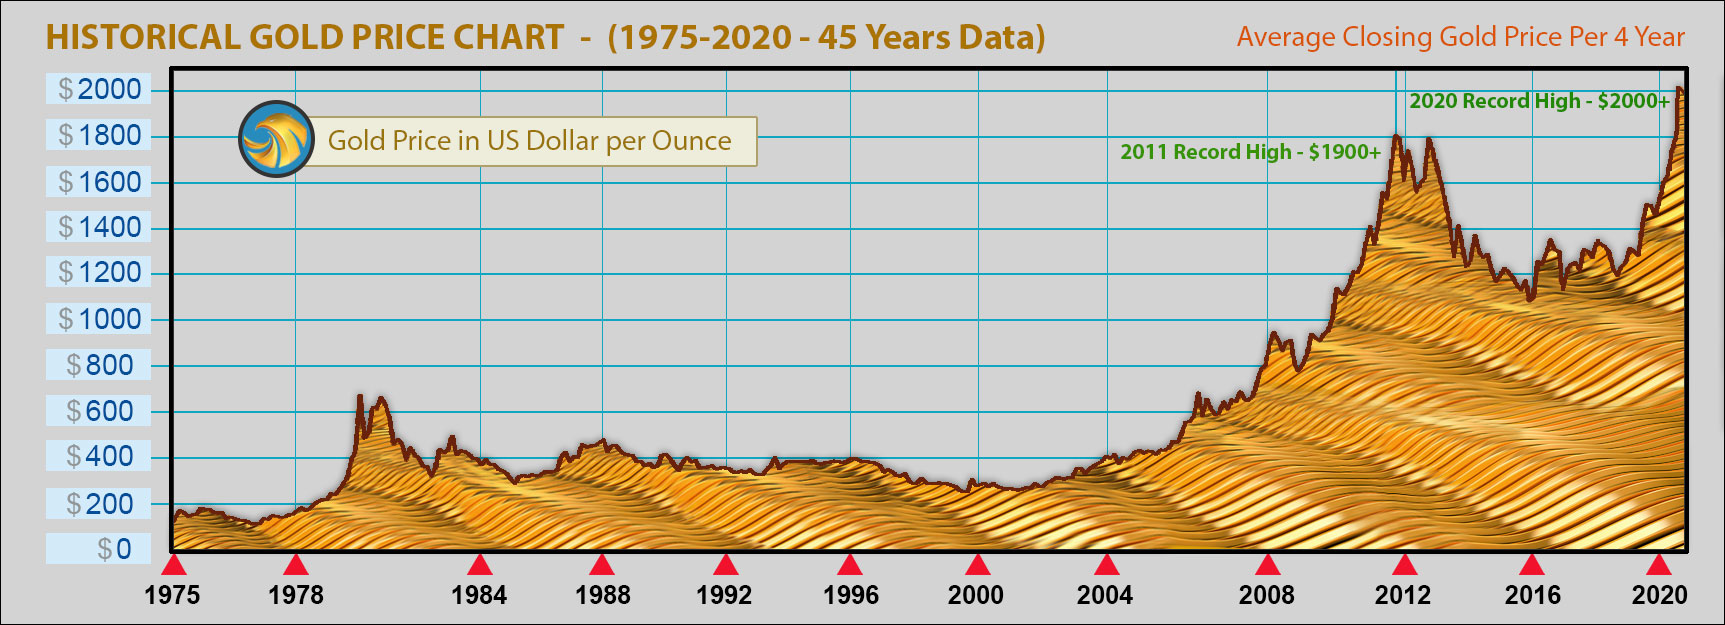 HISTORICAL GOLD PRICE CHART (45 YEARS DATA)